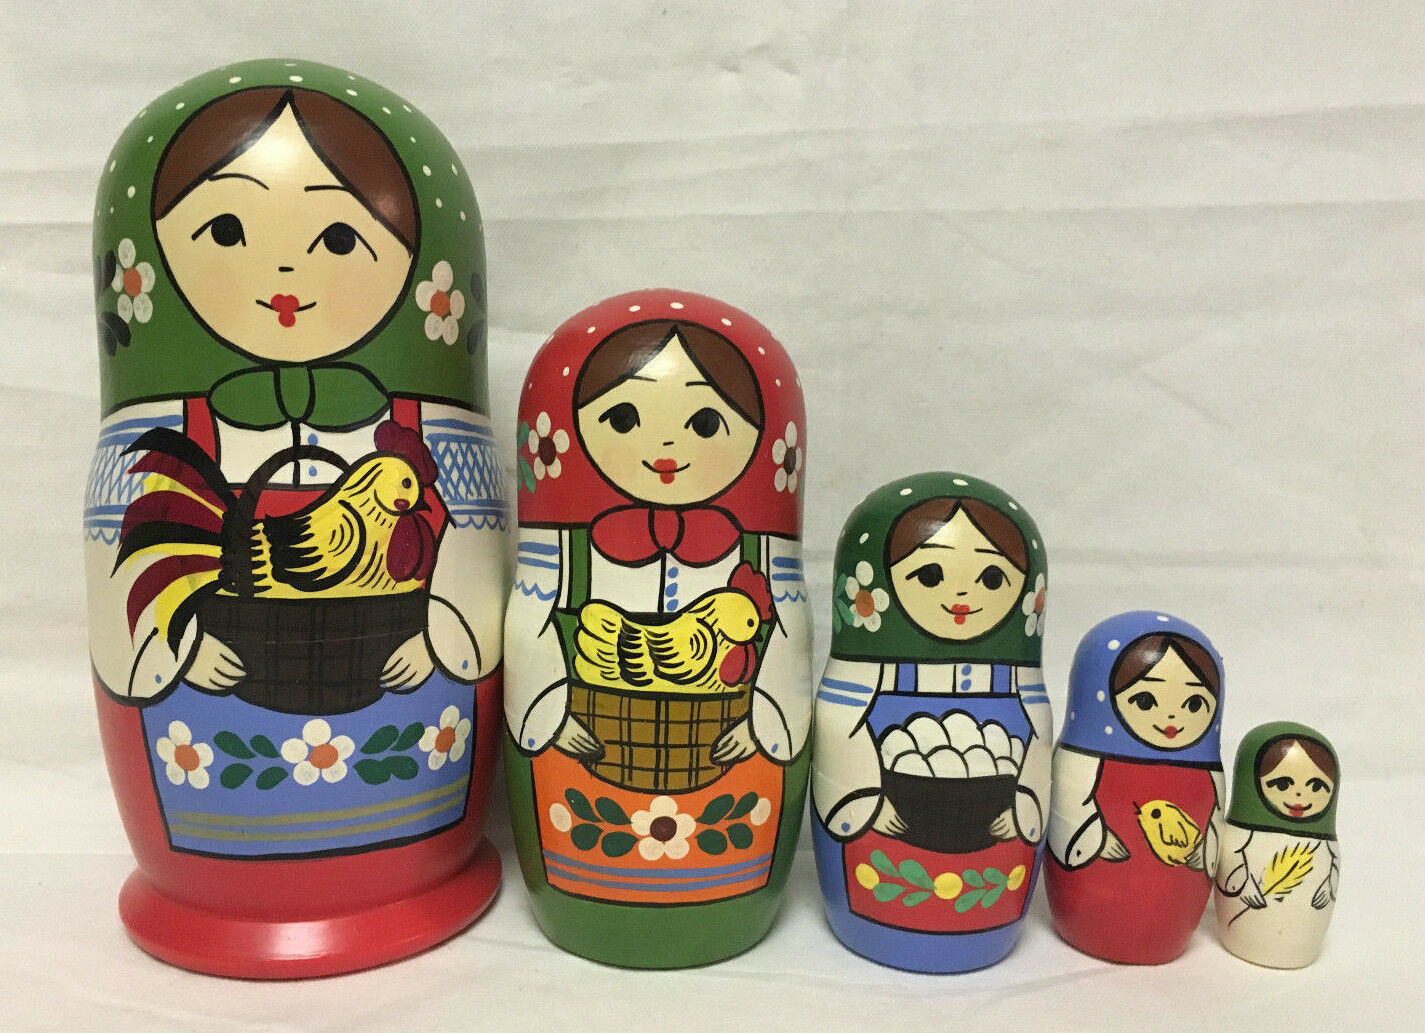 Russian Matryoshka Russian Wooden Nesting Dolls - 5 pieces  19